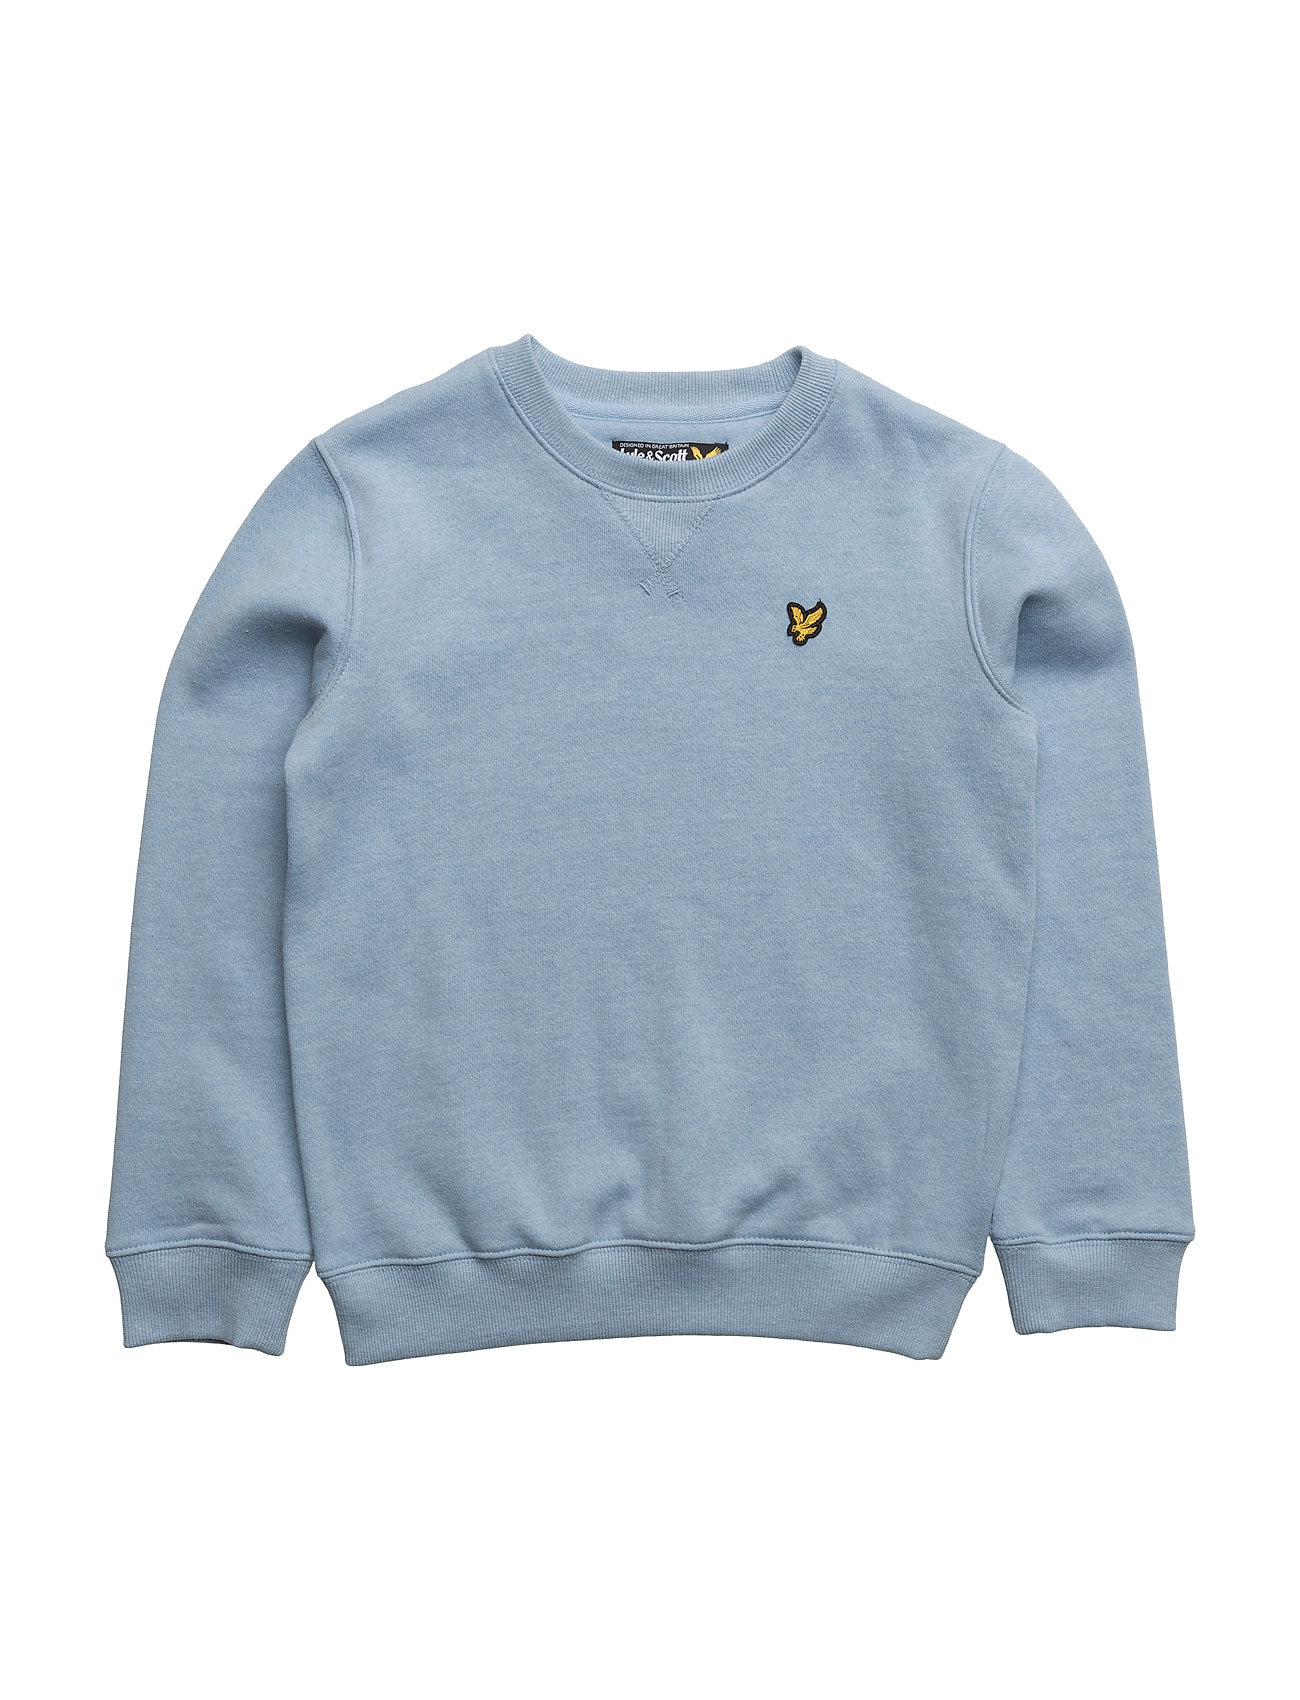 Lyle & Scott Plain Crew Neck Sweatshirt Ls thumbnail